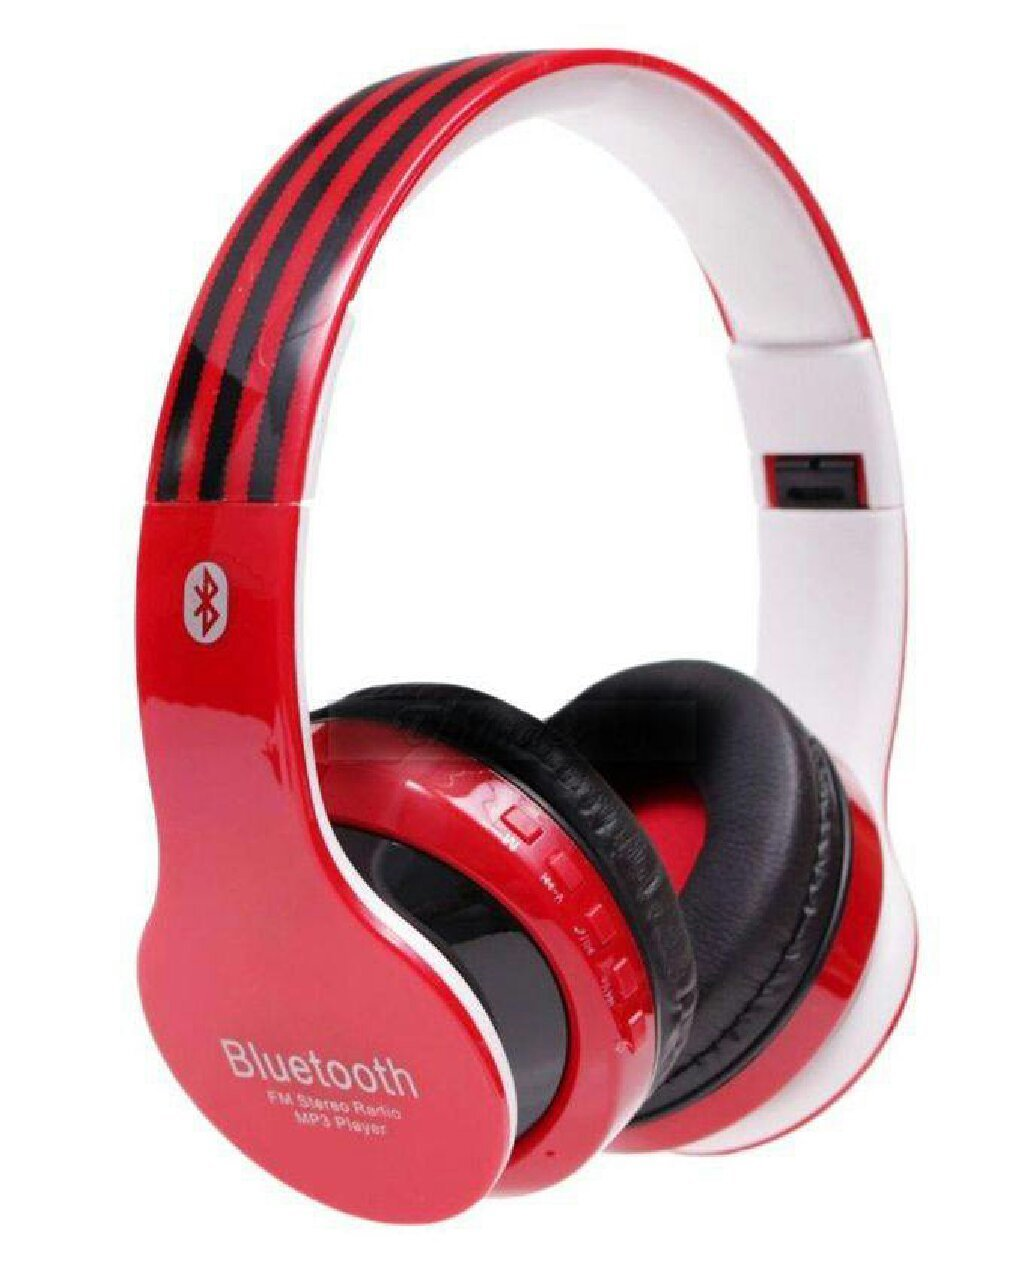 Blutooth Headphone New Box Pack🎁🎁